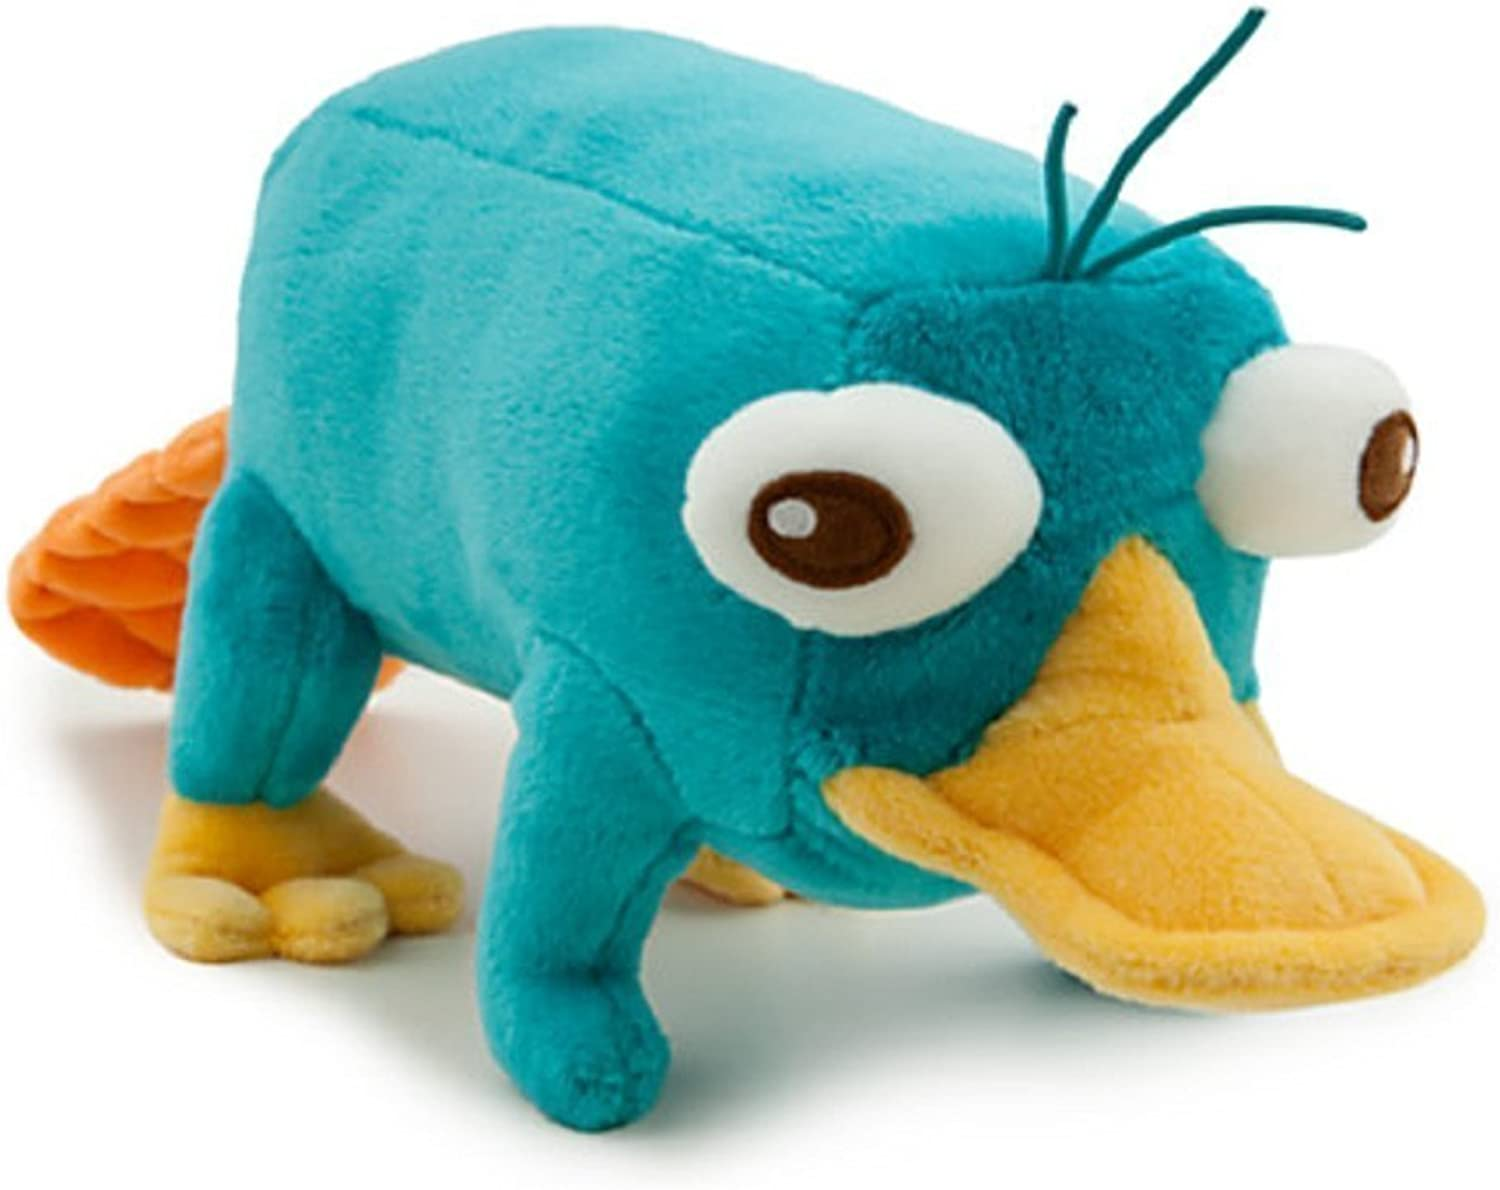 Disney Phineas and Ferb 9 Inch Plush Figure Perry the Palatypus [Toy]